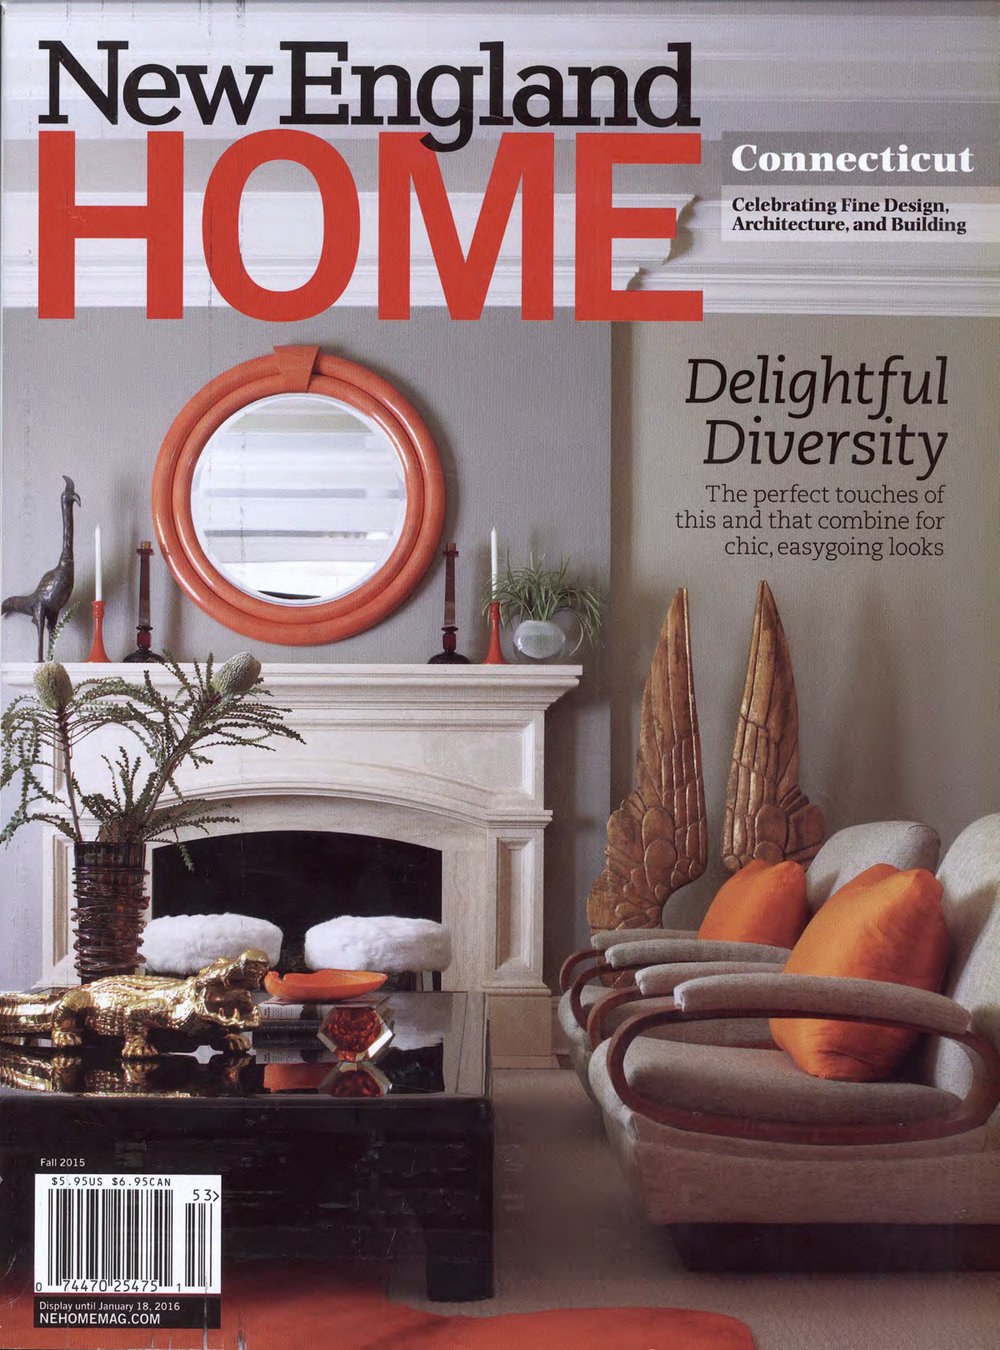 mcgonagle-new england home cover.jpg